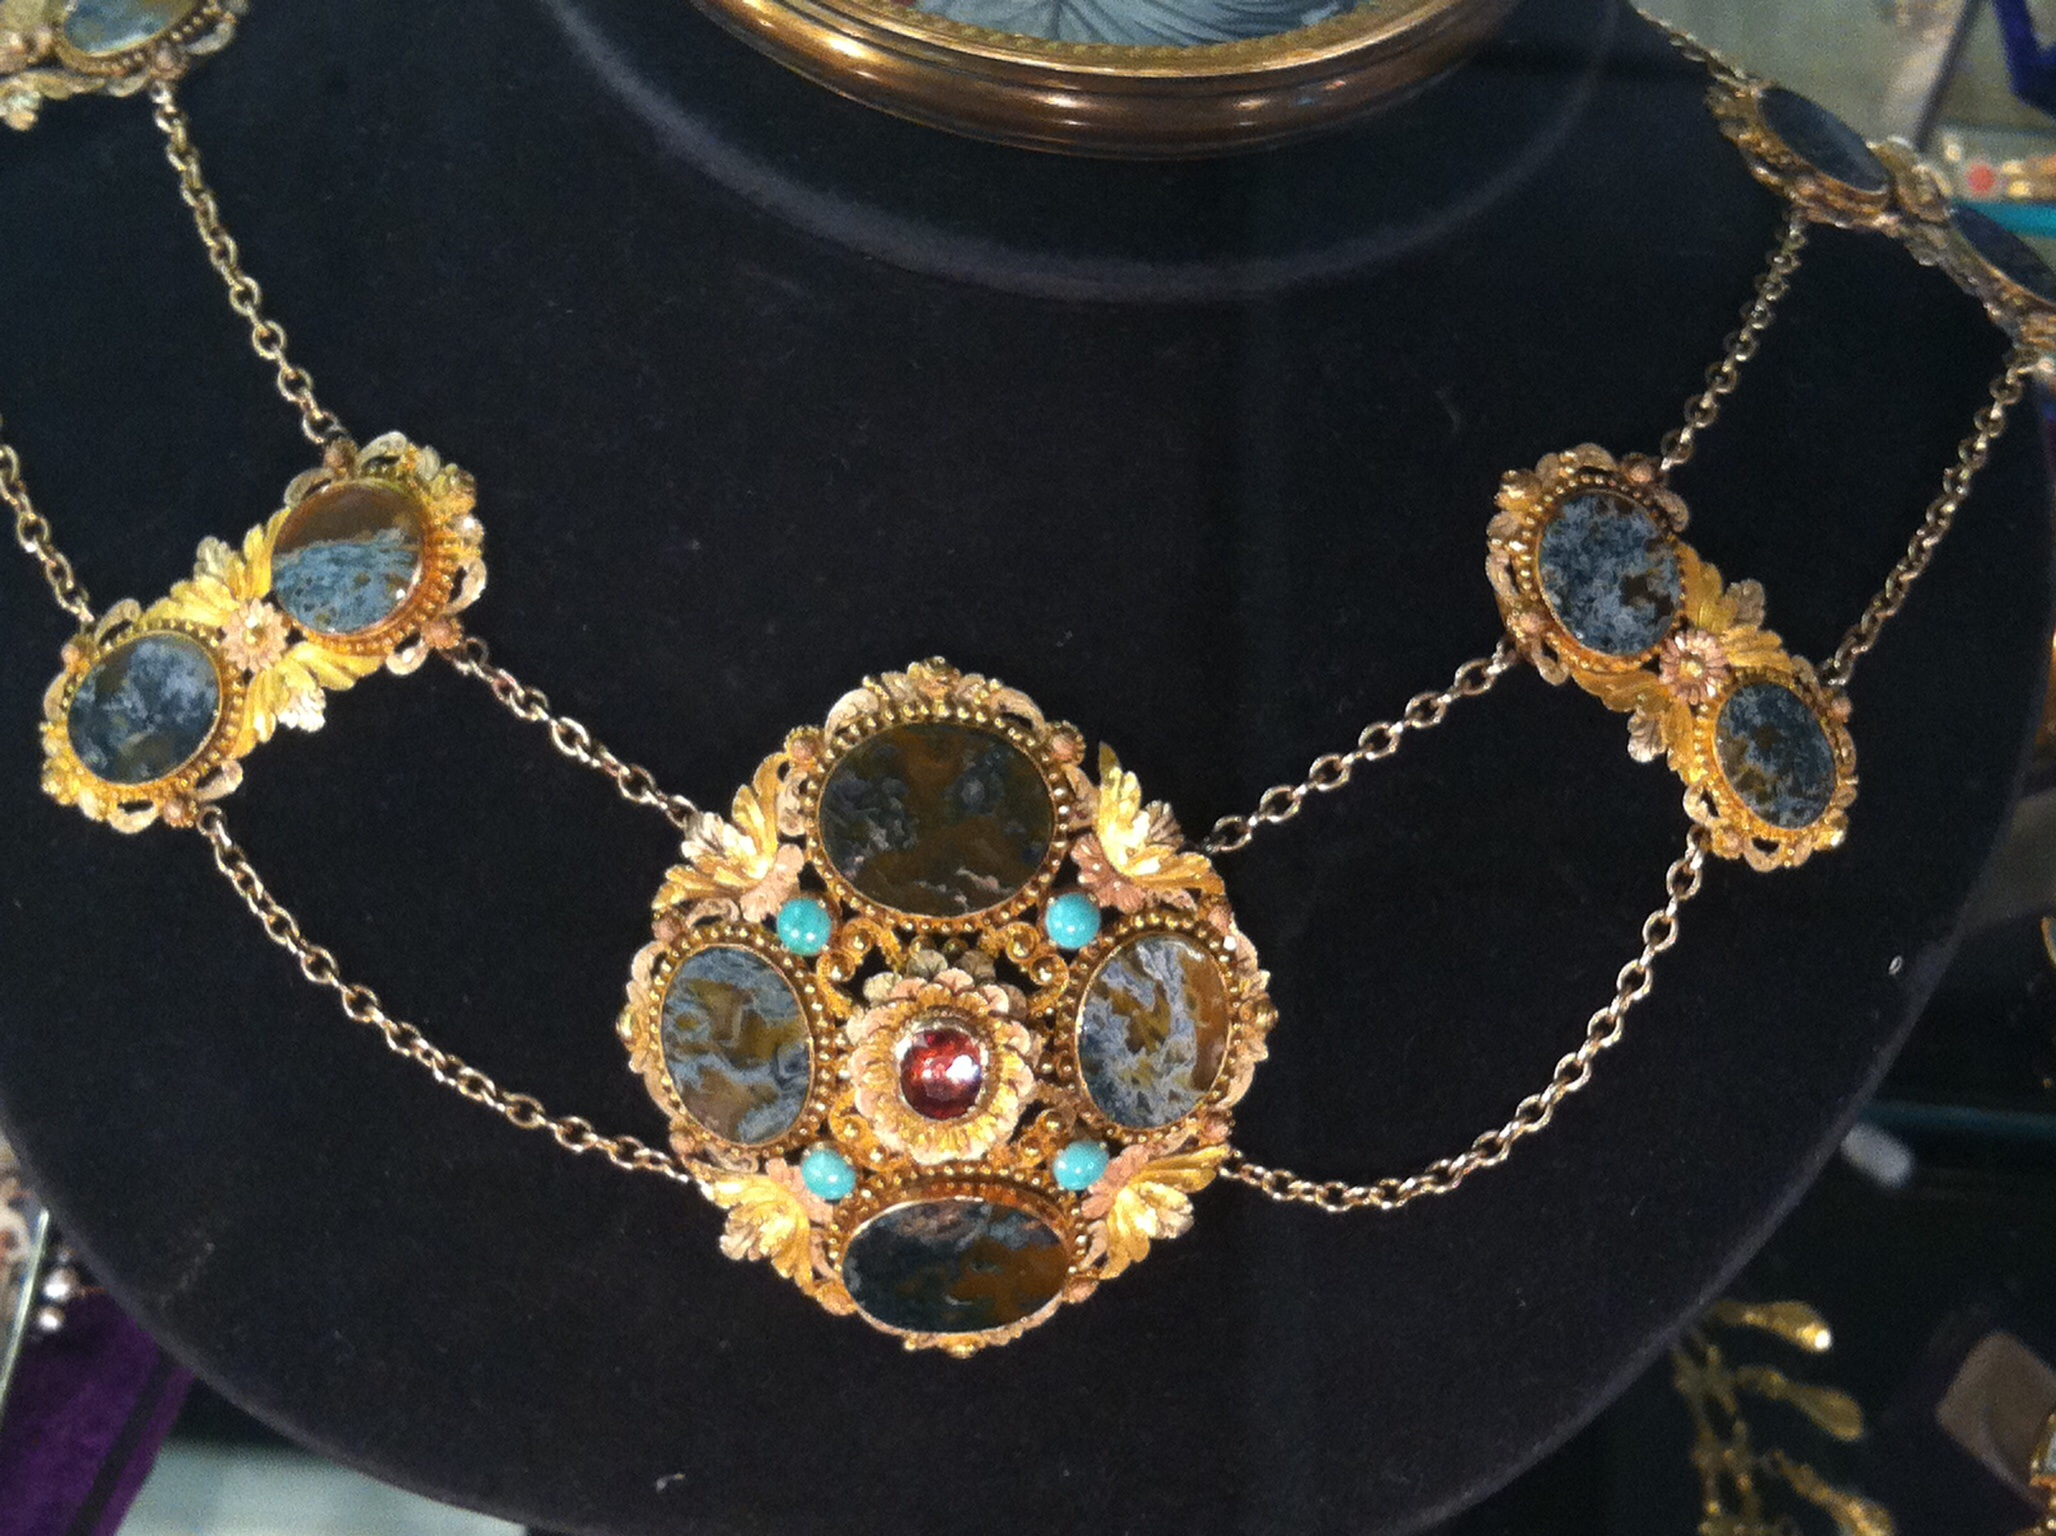 The new york antique jewelry and watch show lisa kramer for Antique jewelry stores nyc